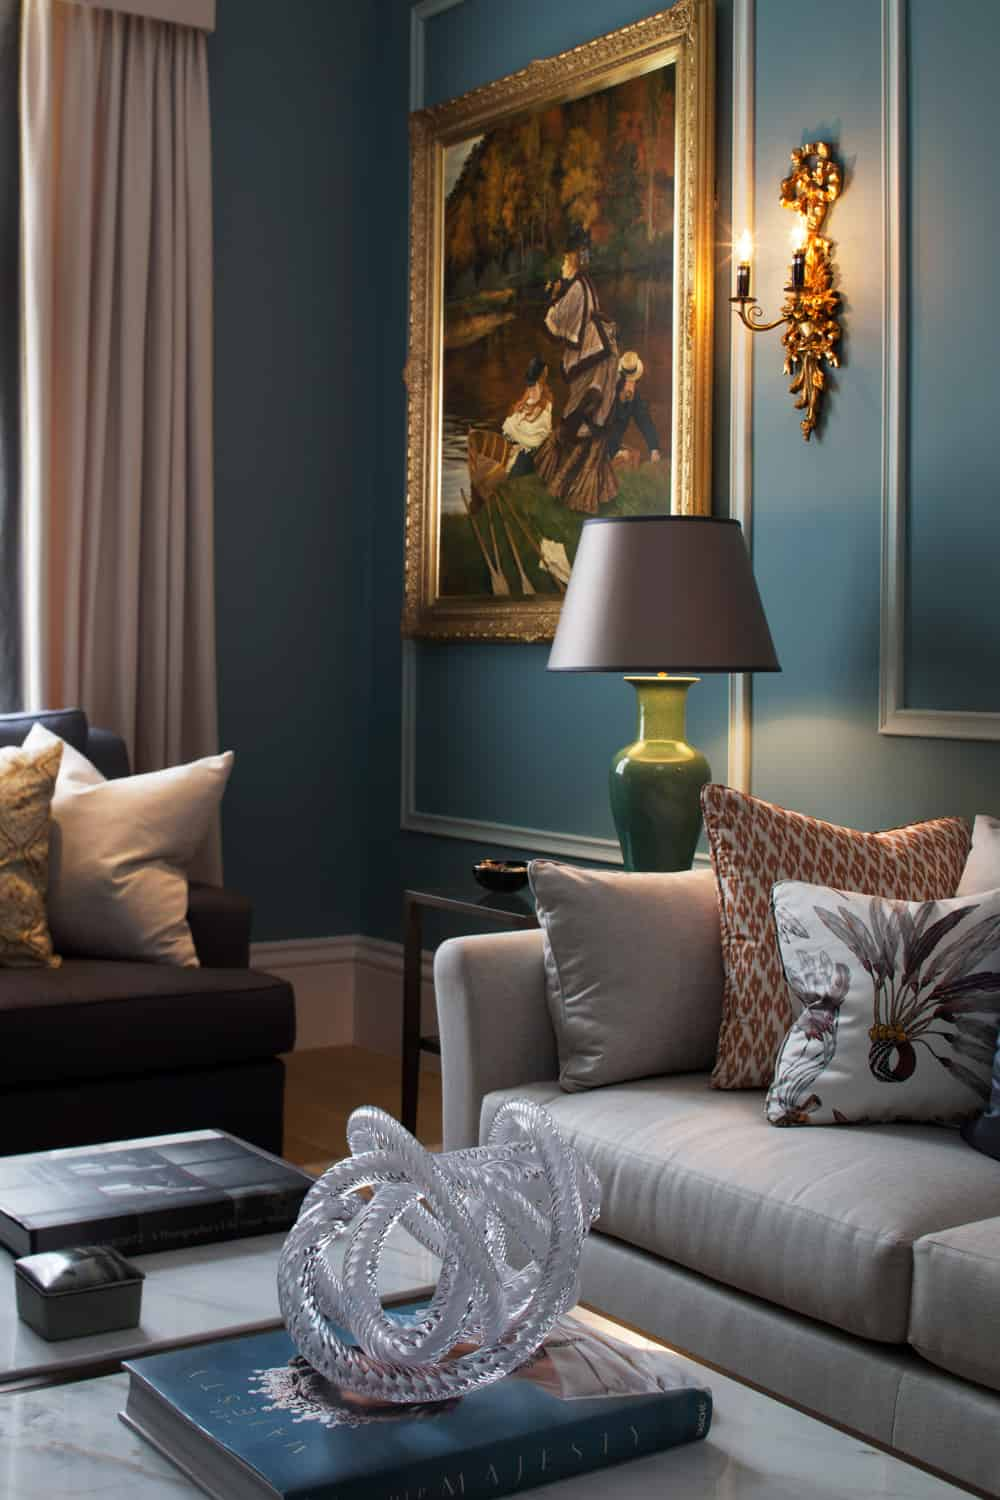 luxury living room decor and accessories roselind wilson design